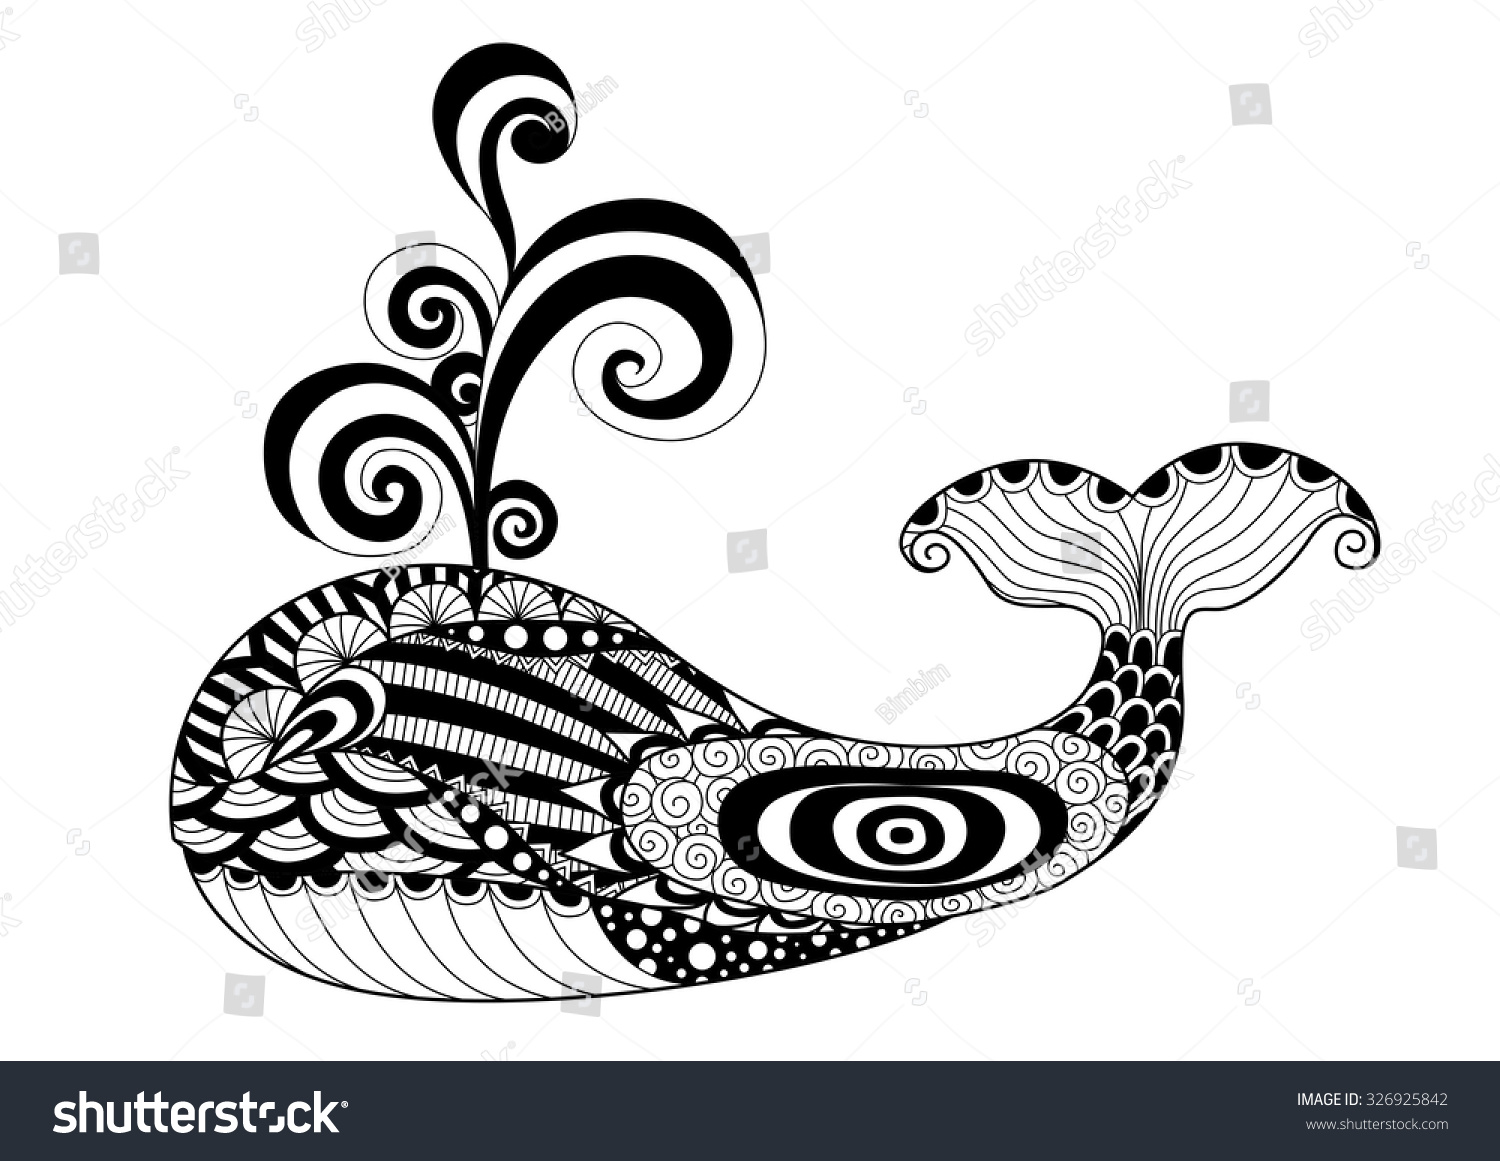 Coloring book whale - Hand Drawn Zentangle Whale For Coloring Page Logo Pattern Tattoo And T Shirt